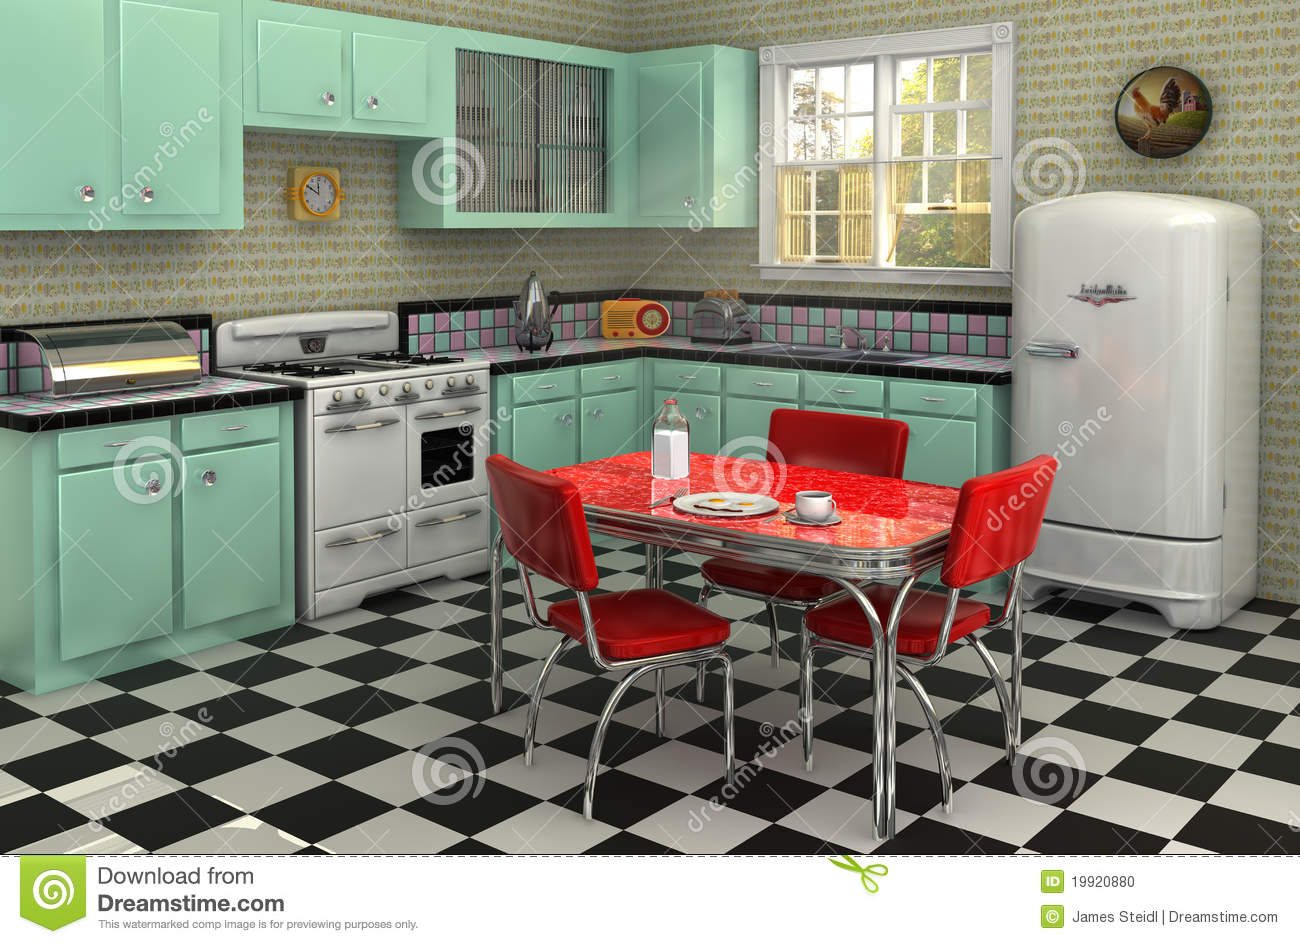 1950 39 s kitchen stock illustration image of american. Black Bedroom Furniture Sets. Home Design Ideas